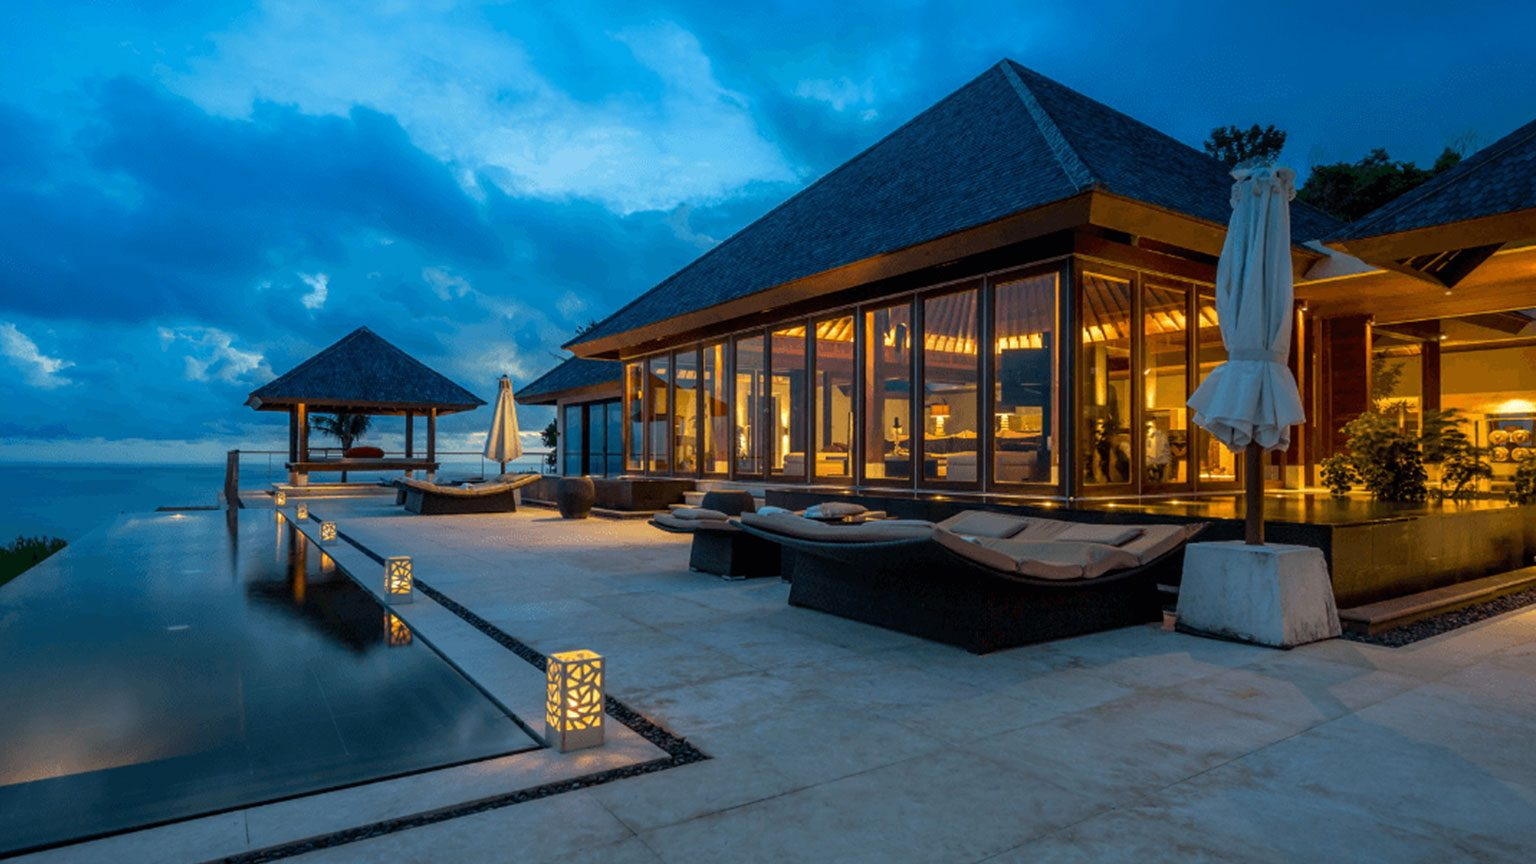 Luxury hotel villa with pool at night